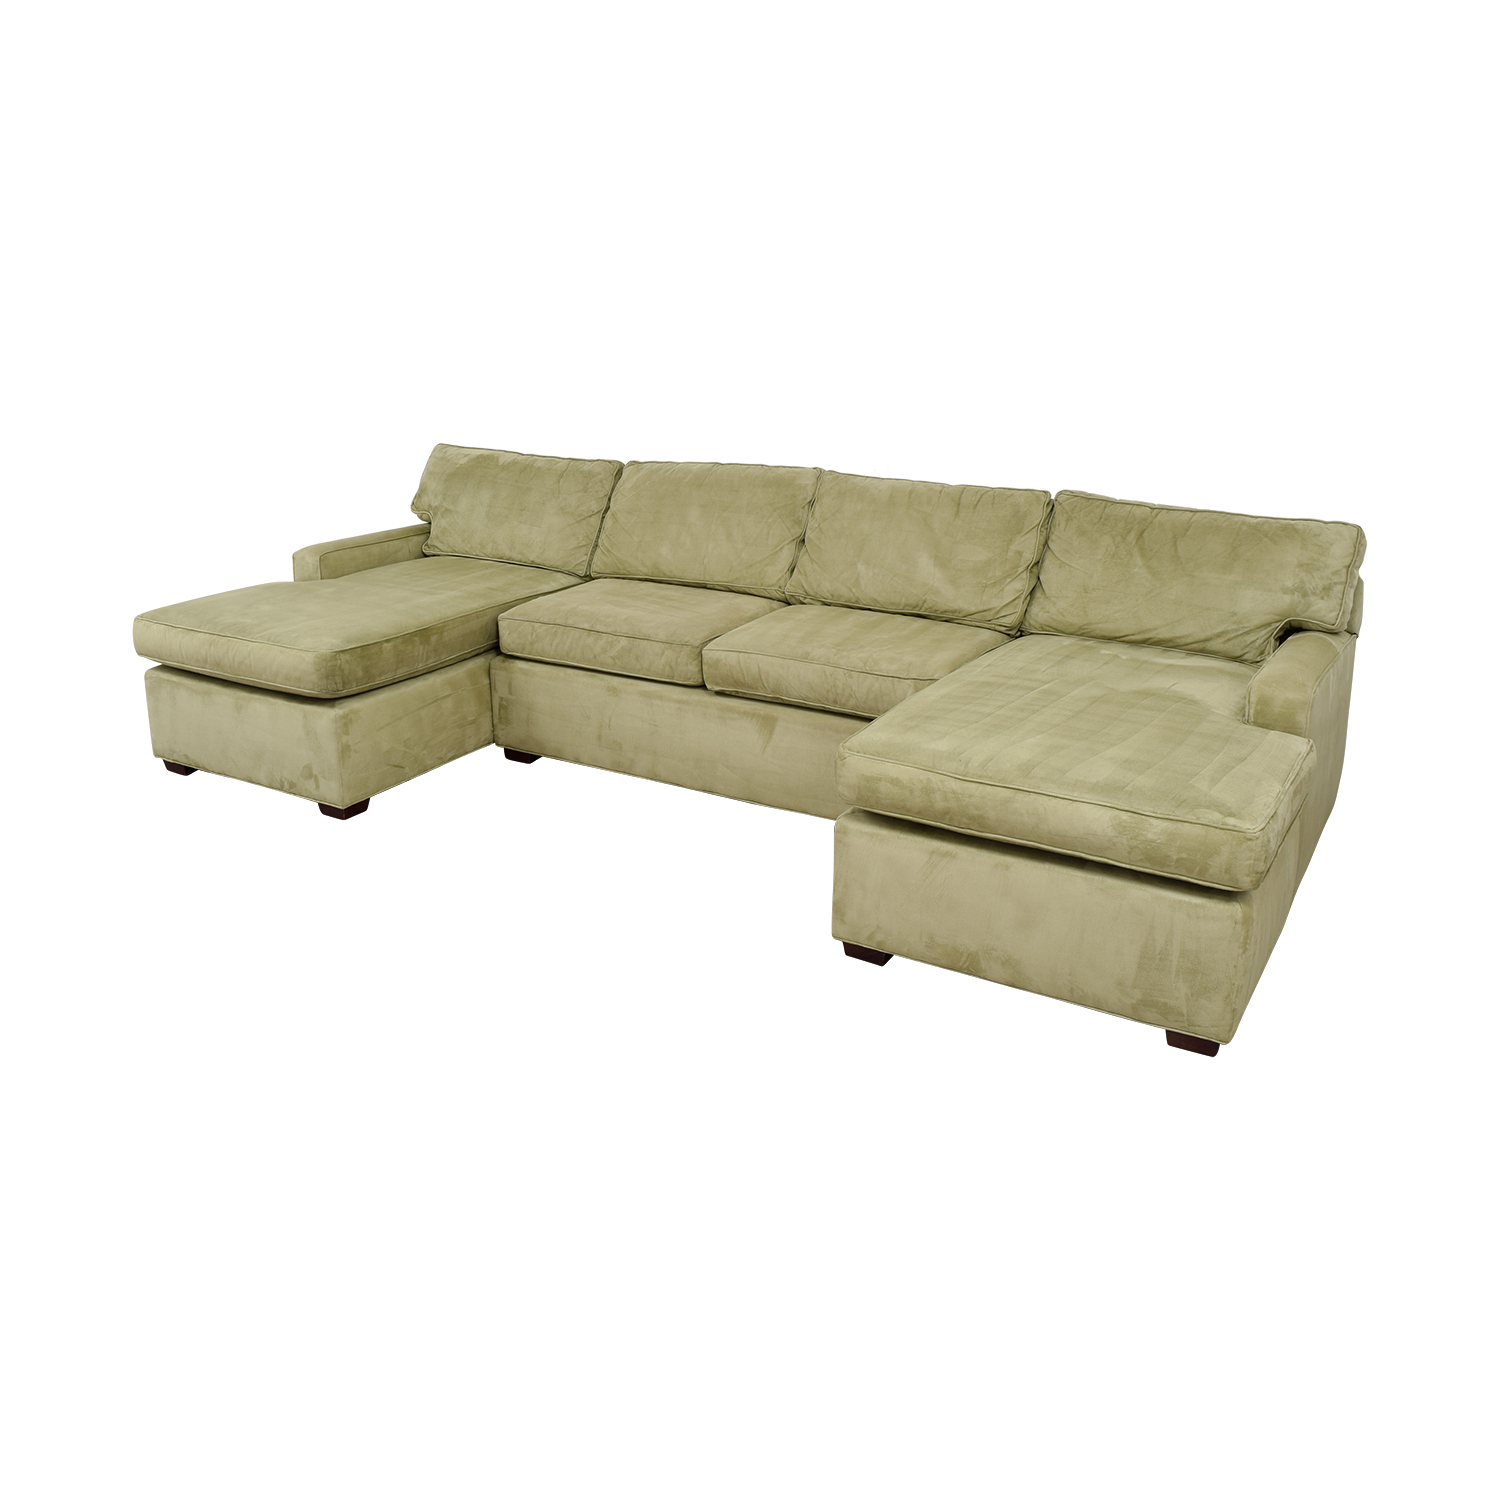 86 off pottery barn pottery barn double chaise light for Light green sectional sofa